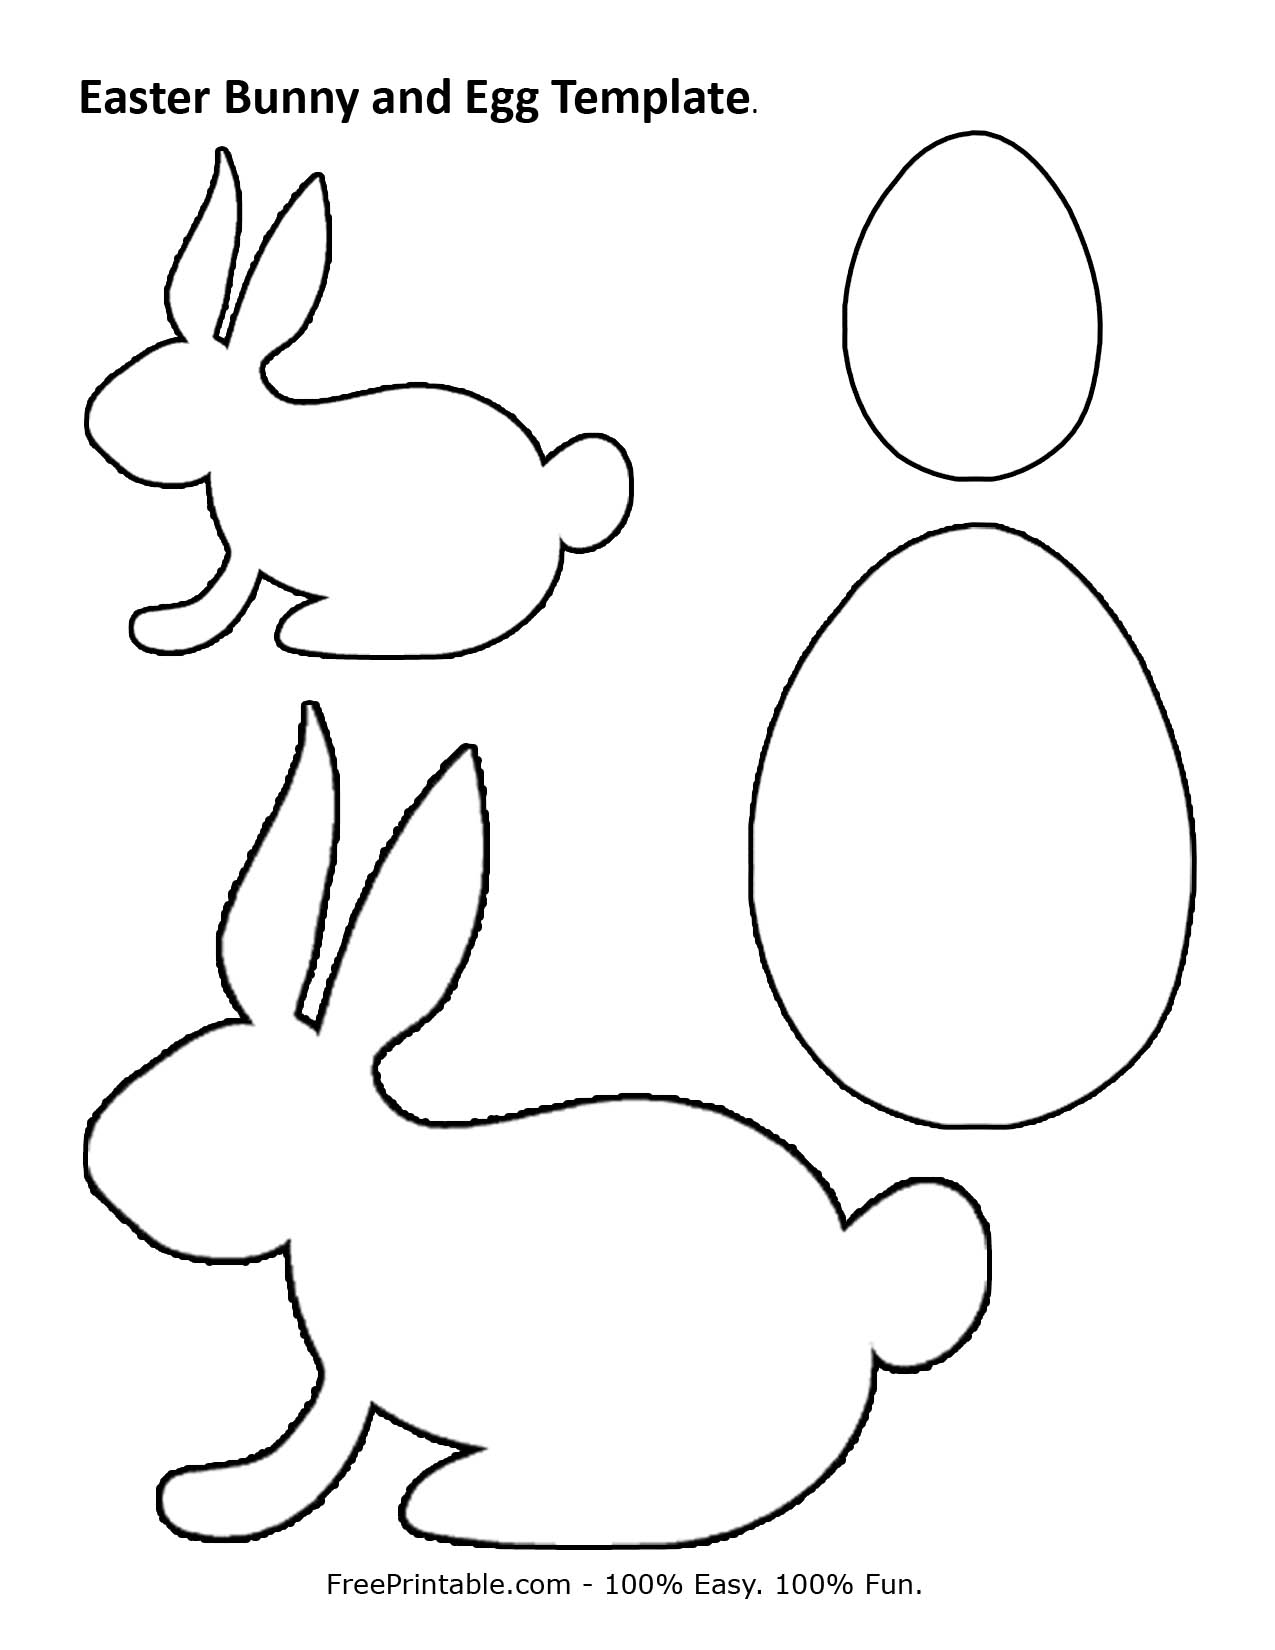 23 body outline templates pdf jpg free premium for Bunny feet template printable